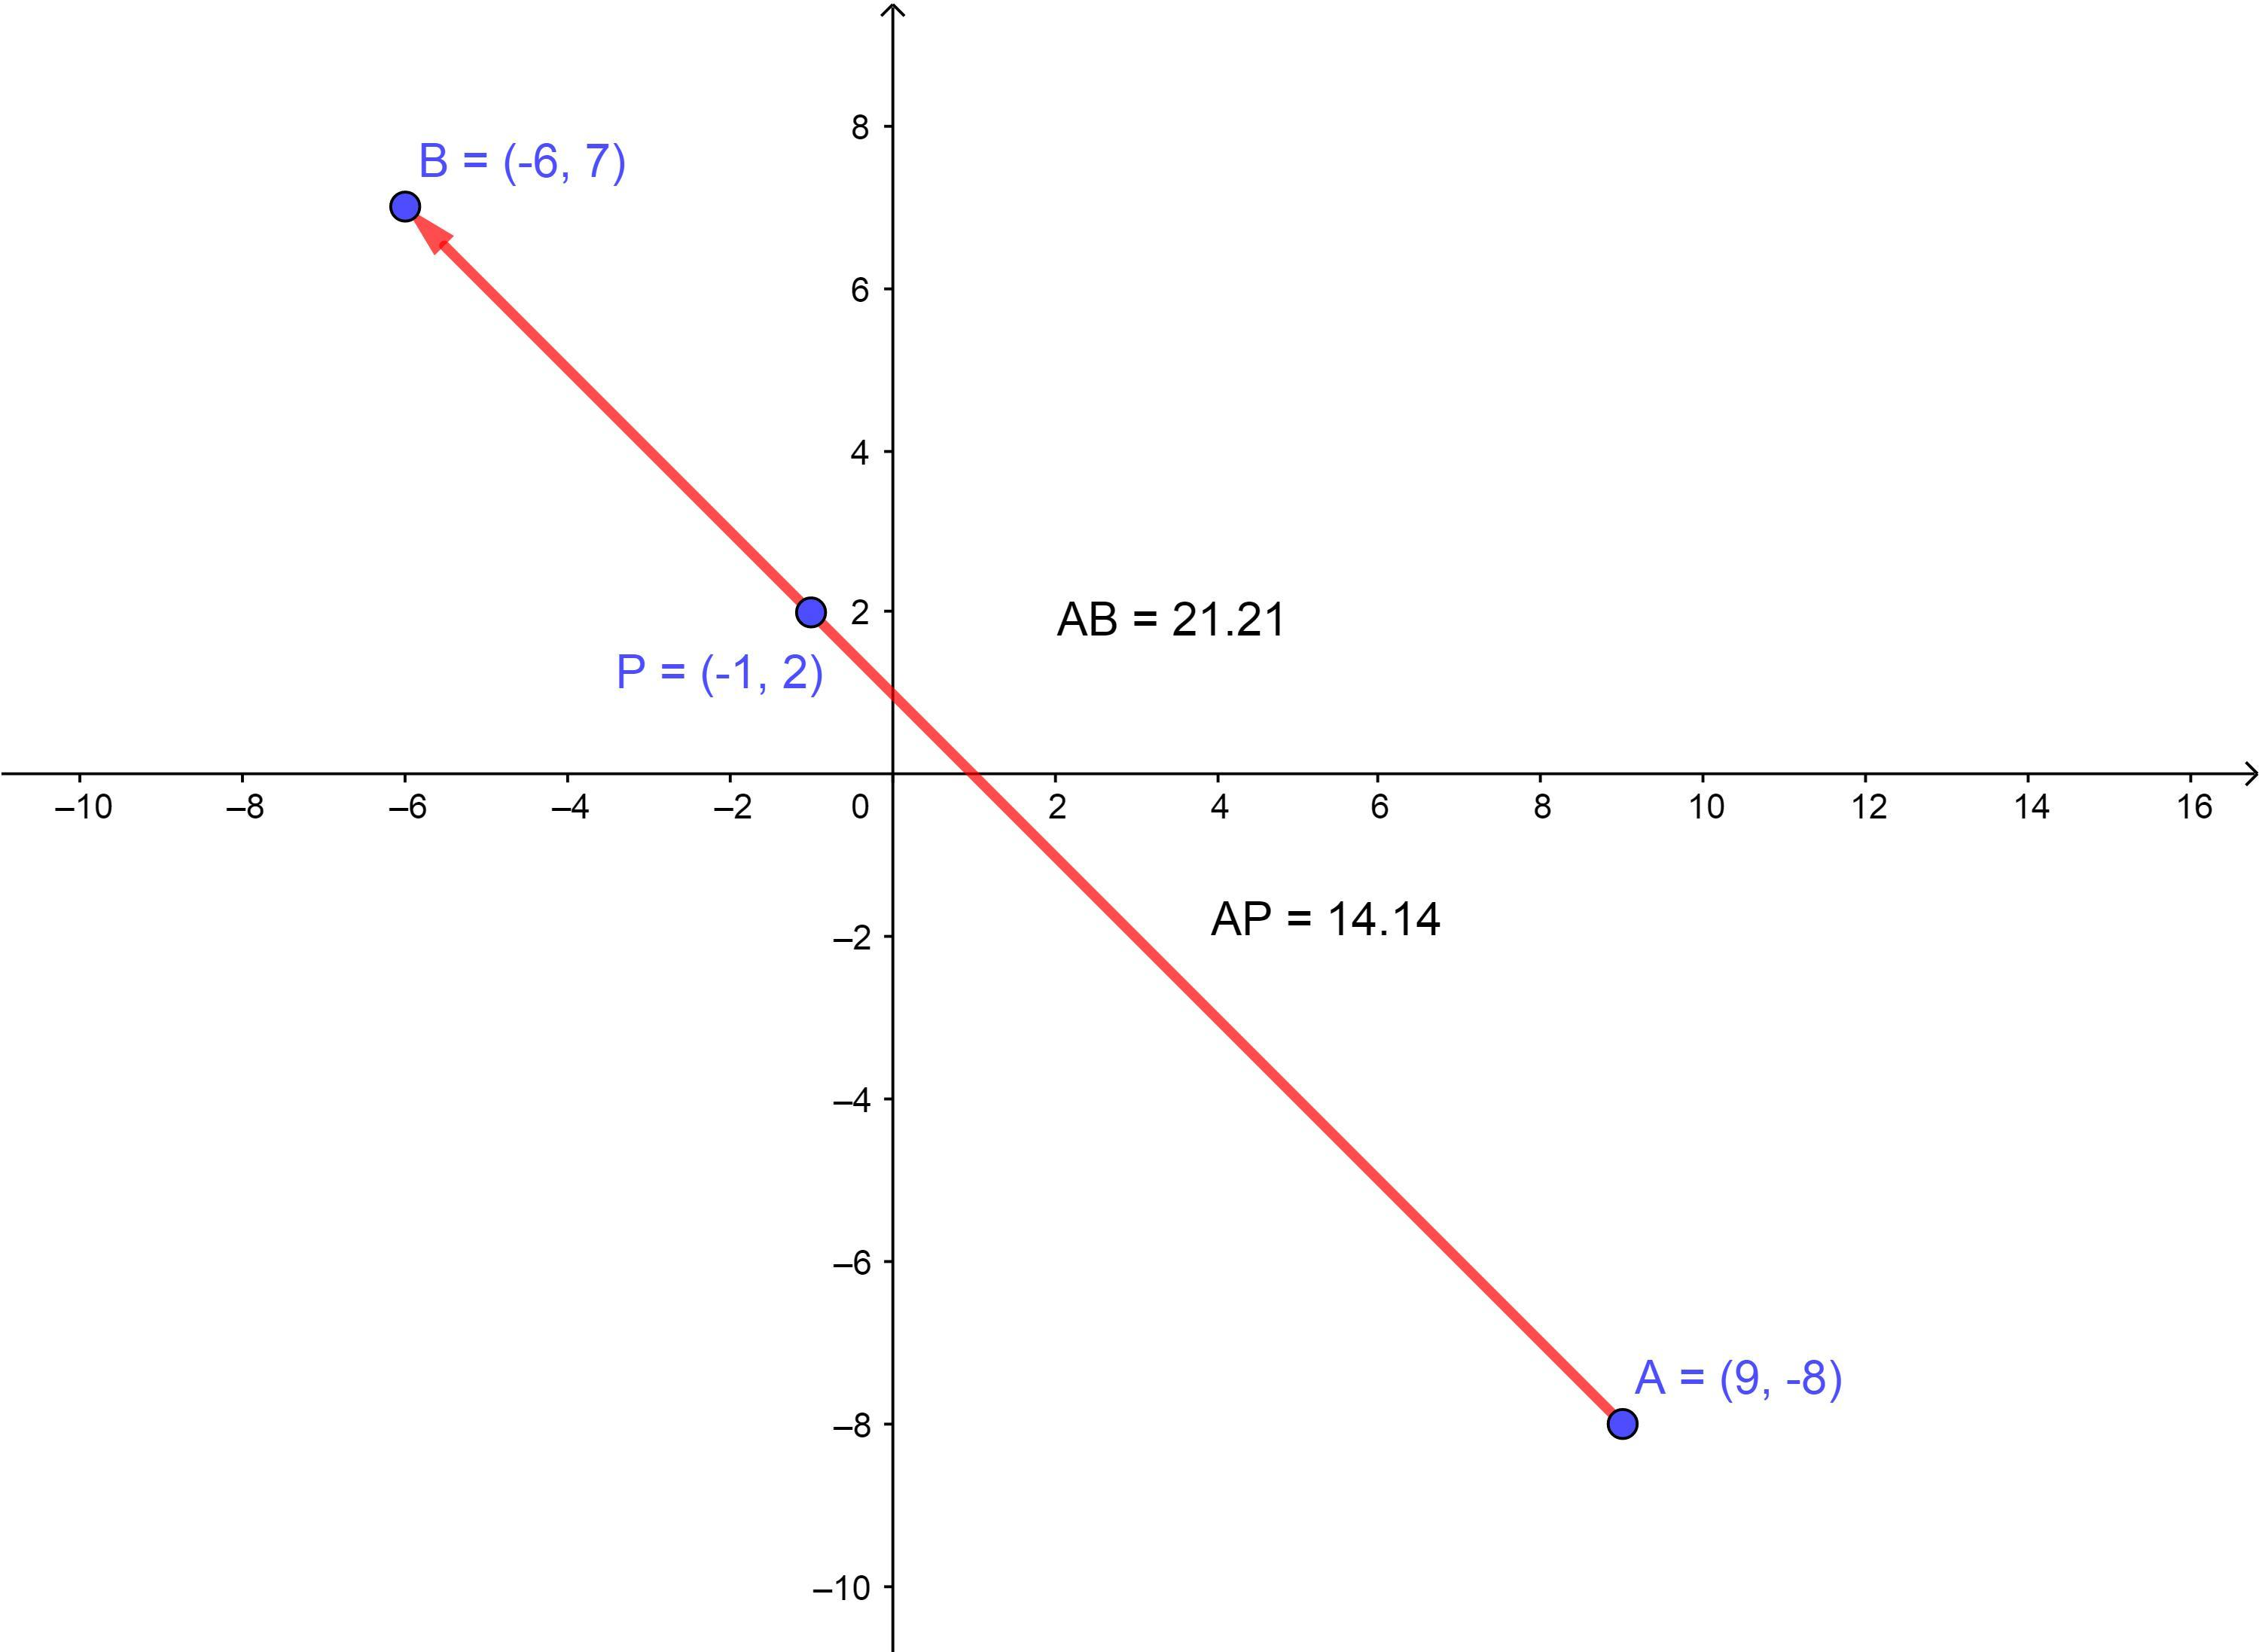 What are the x- and y- coordinates of point P on the